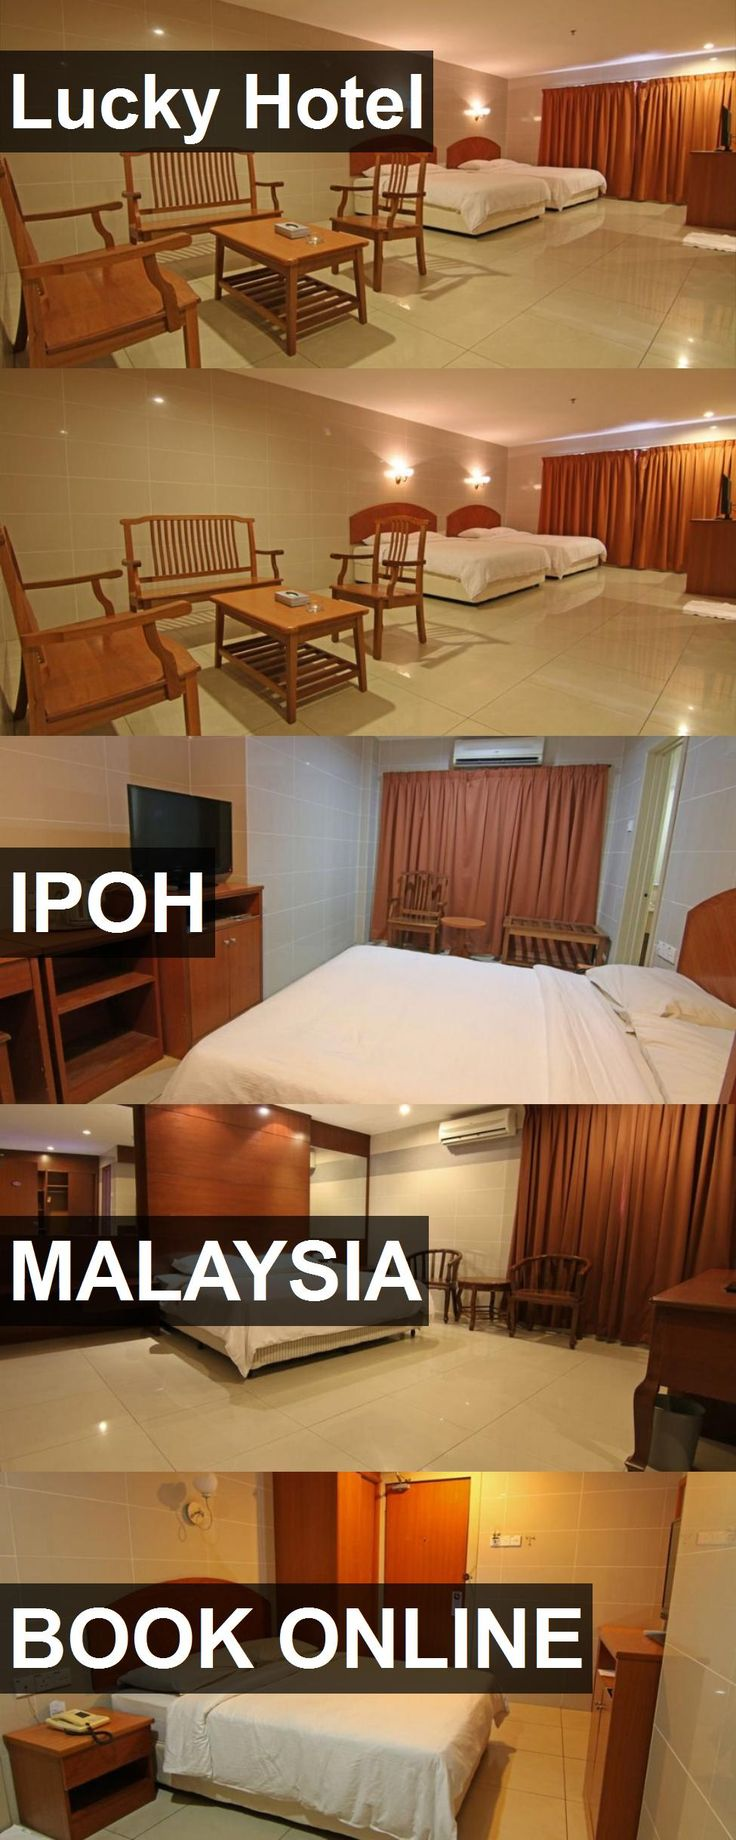 Lucky Hotel in Ipoh, Malaysia. For more information, photos, reviews and best prices please follow the link. #Malaysia #Ipoh #travel #vacation #hotel